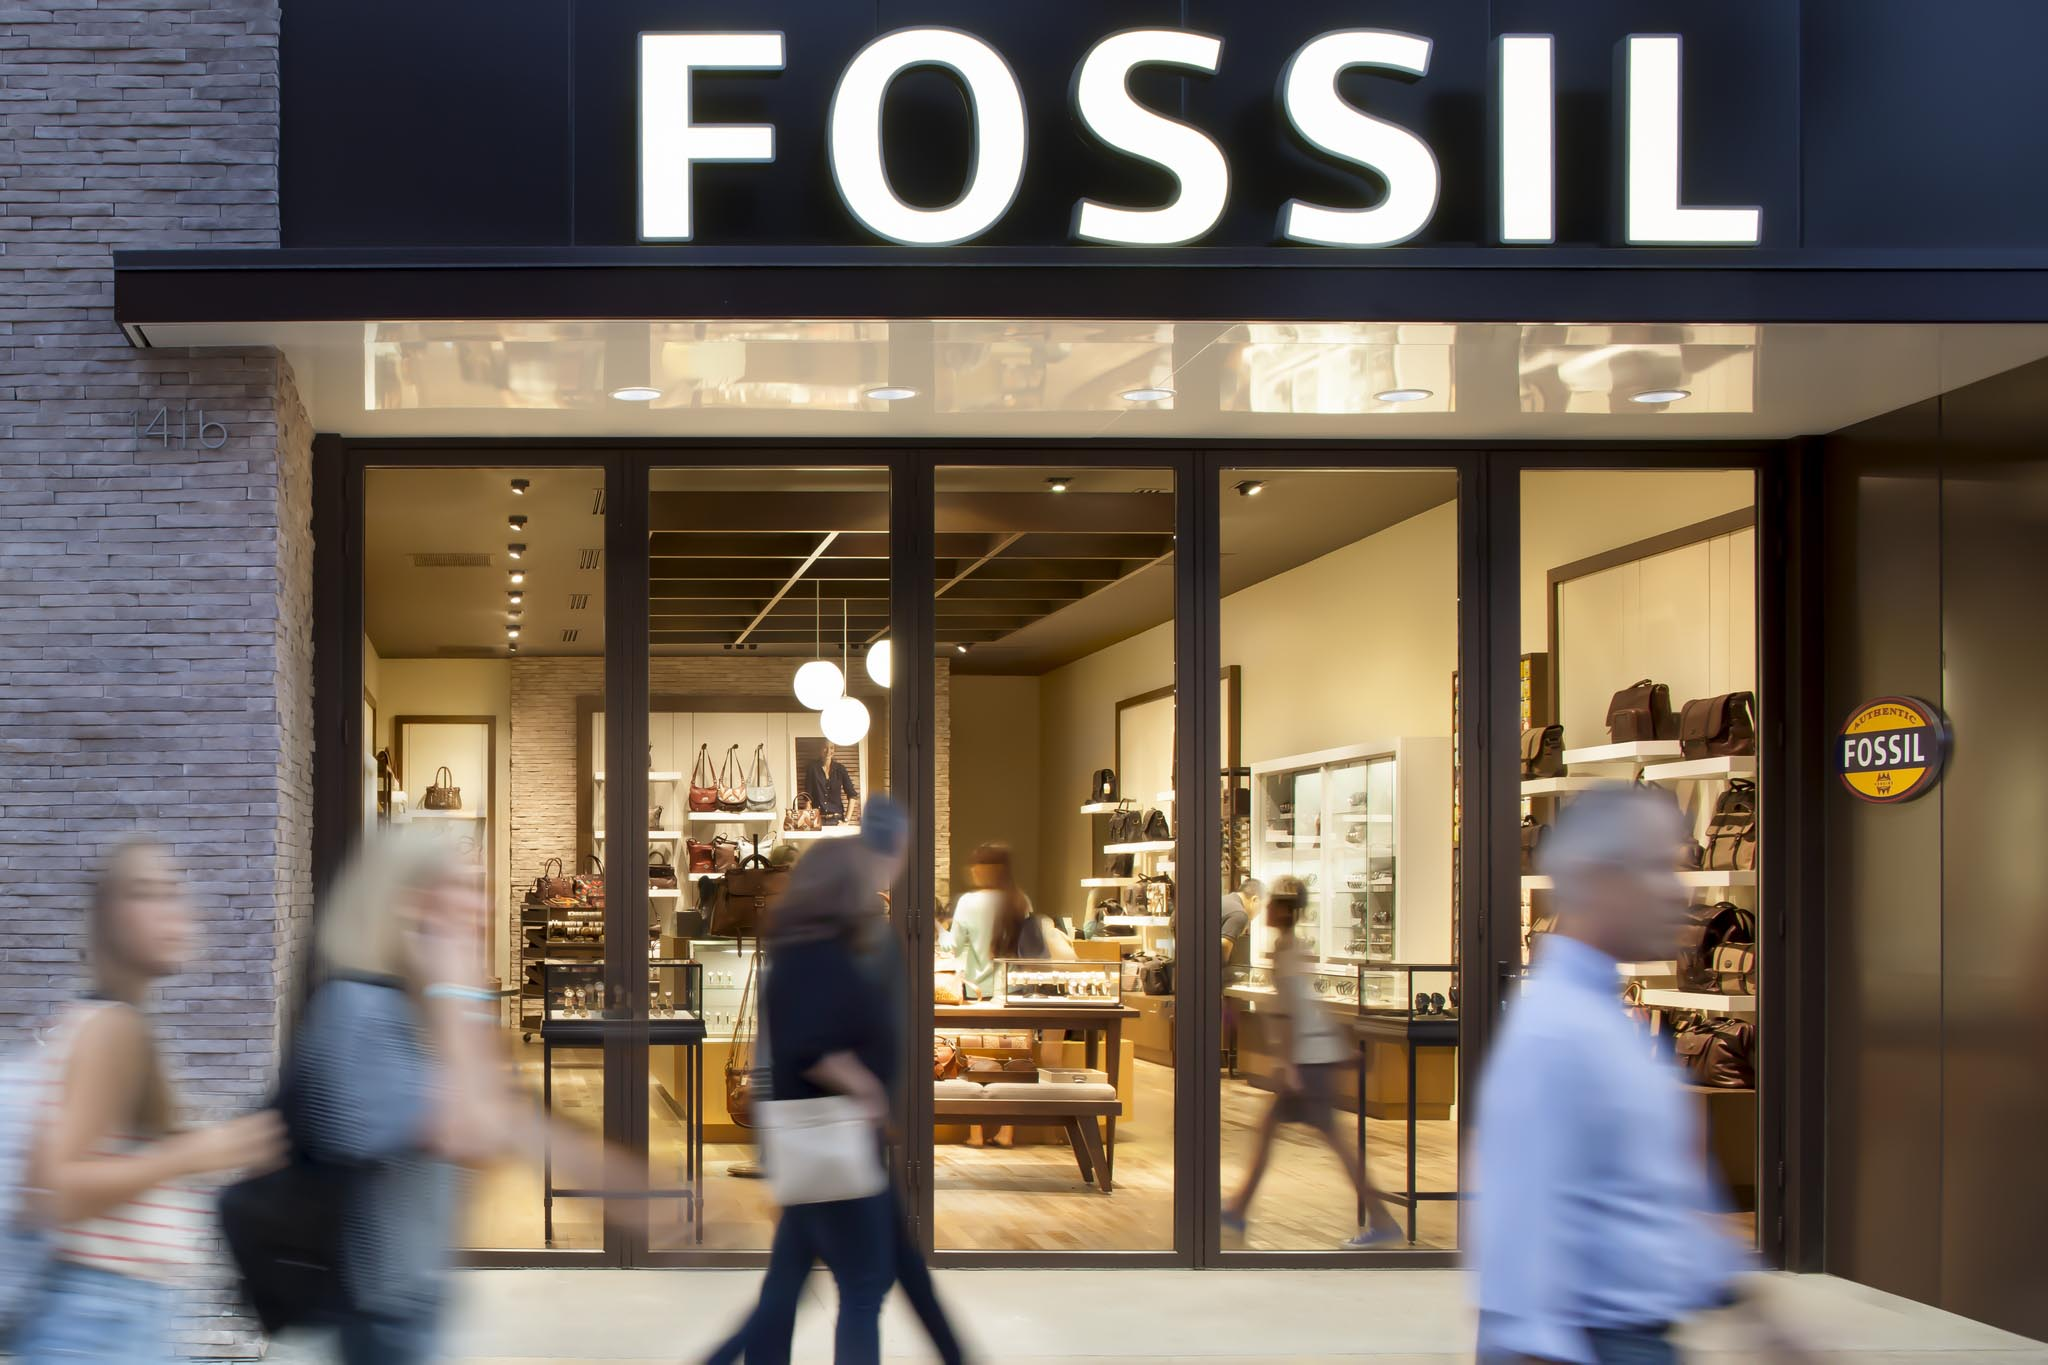 Fossil Gallery Nanawall Operable Glass Wall Systems